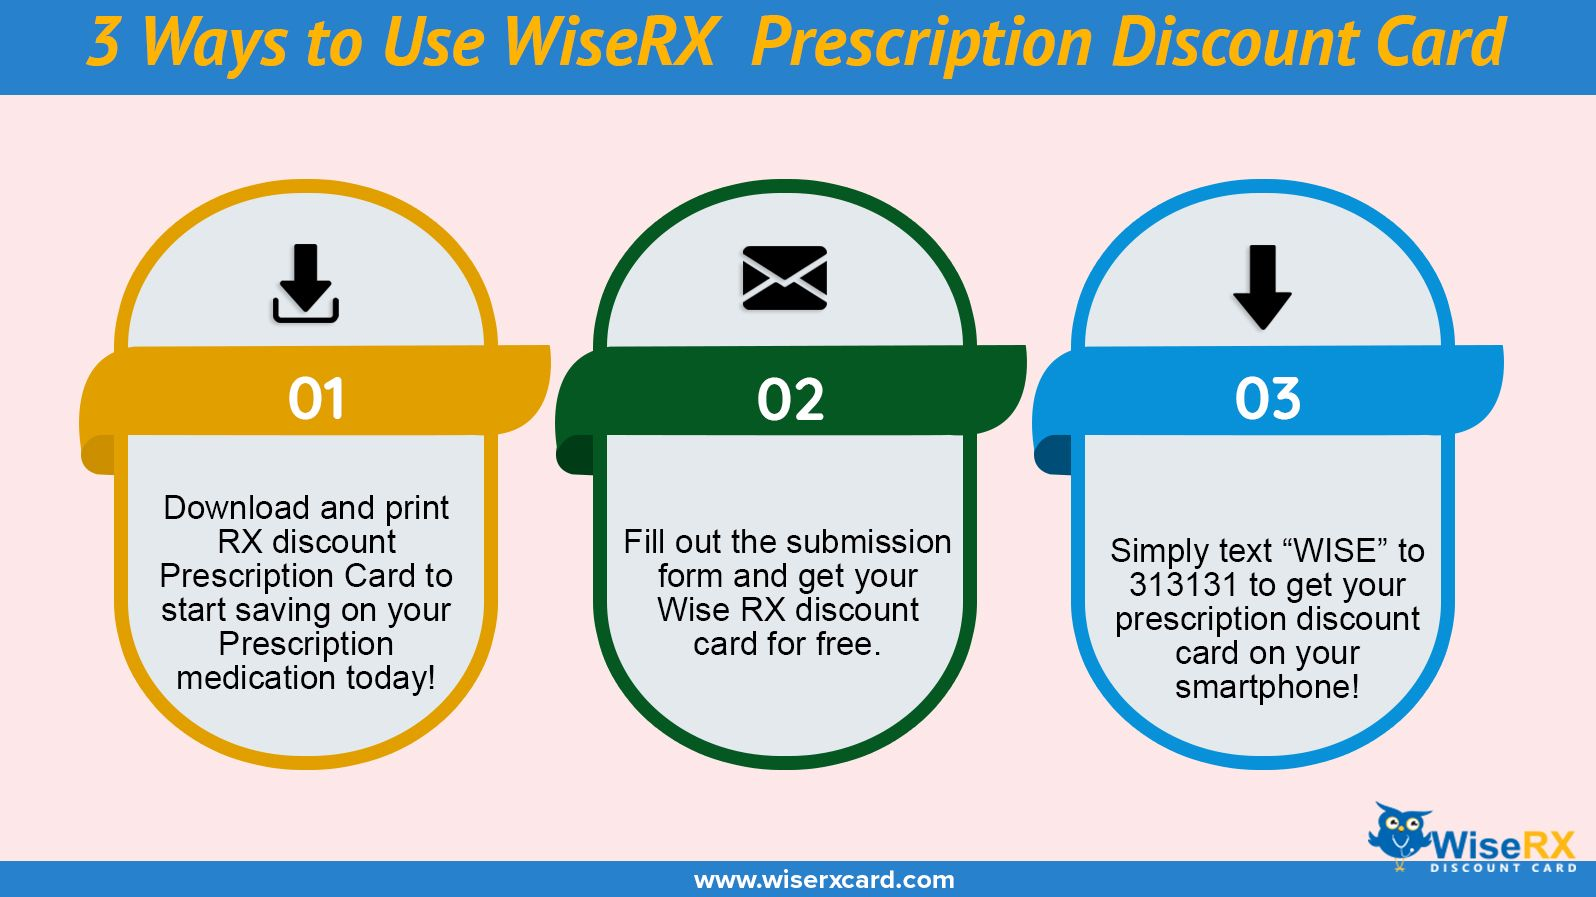 Download the free rx discount card cards medical